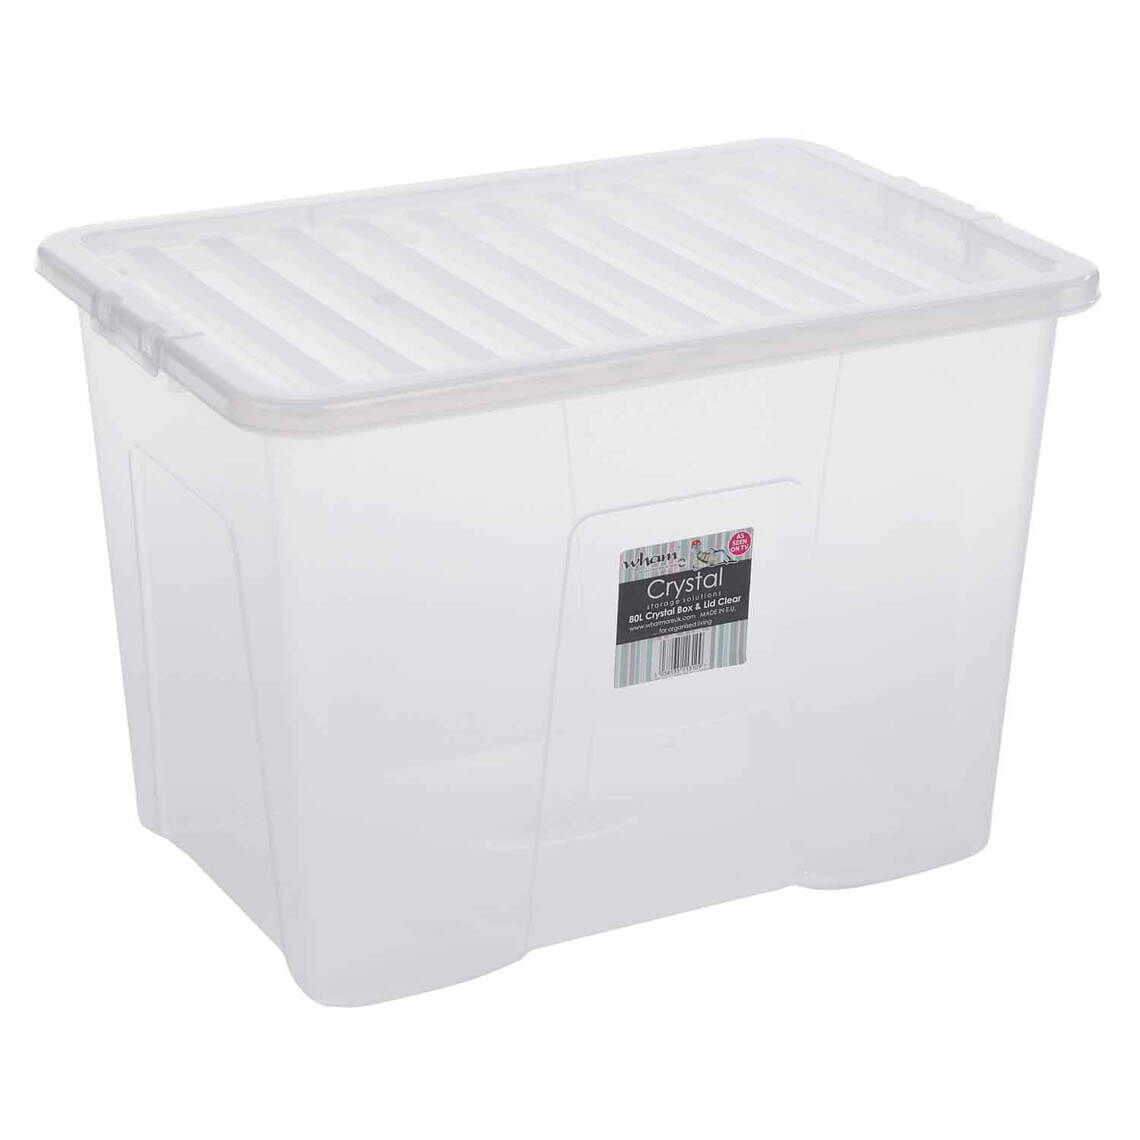 Homestore and more storage boxes britton compact back to wall wc